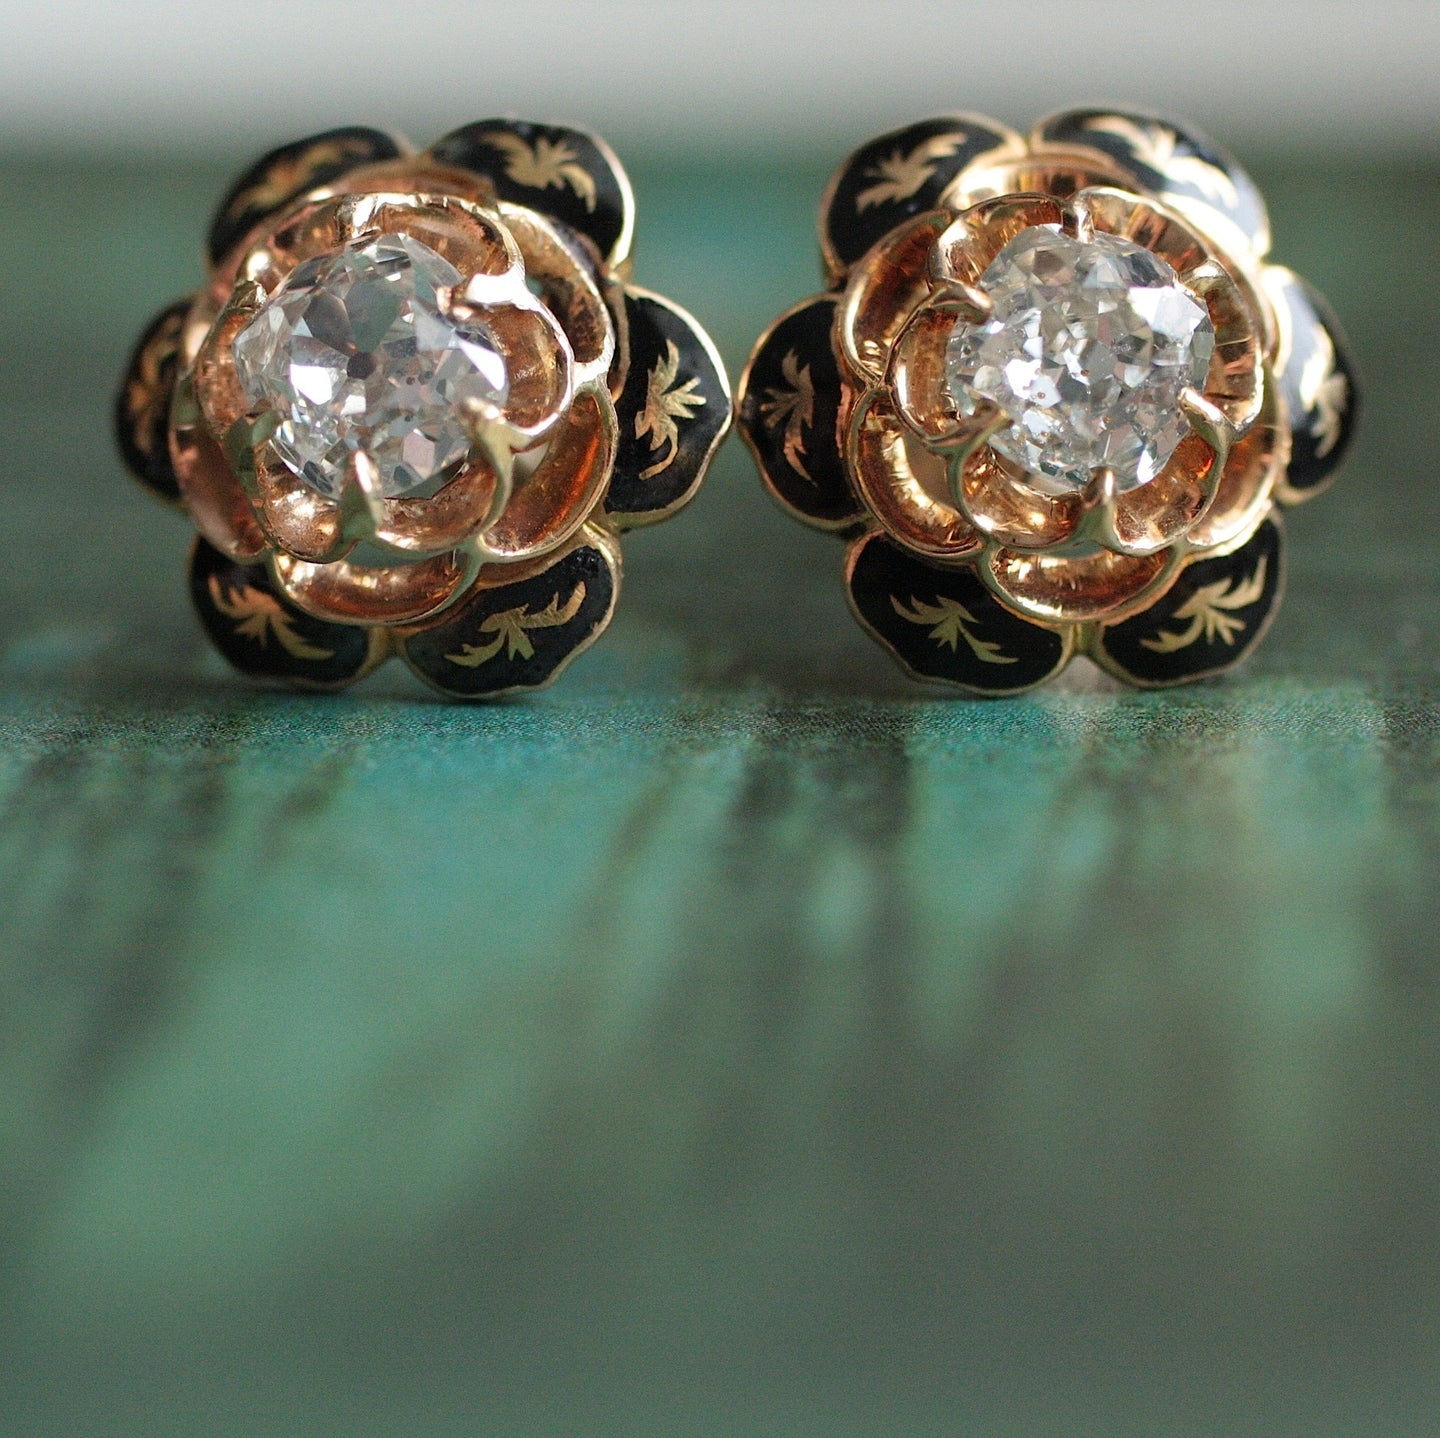 Circa 1890 18K Enamel Diamond Stud Earrings